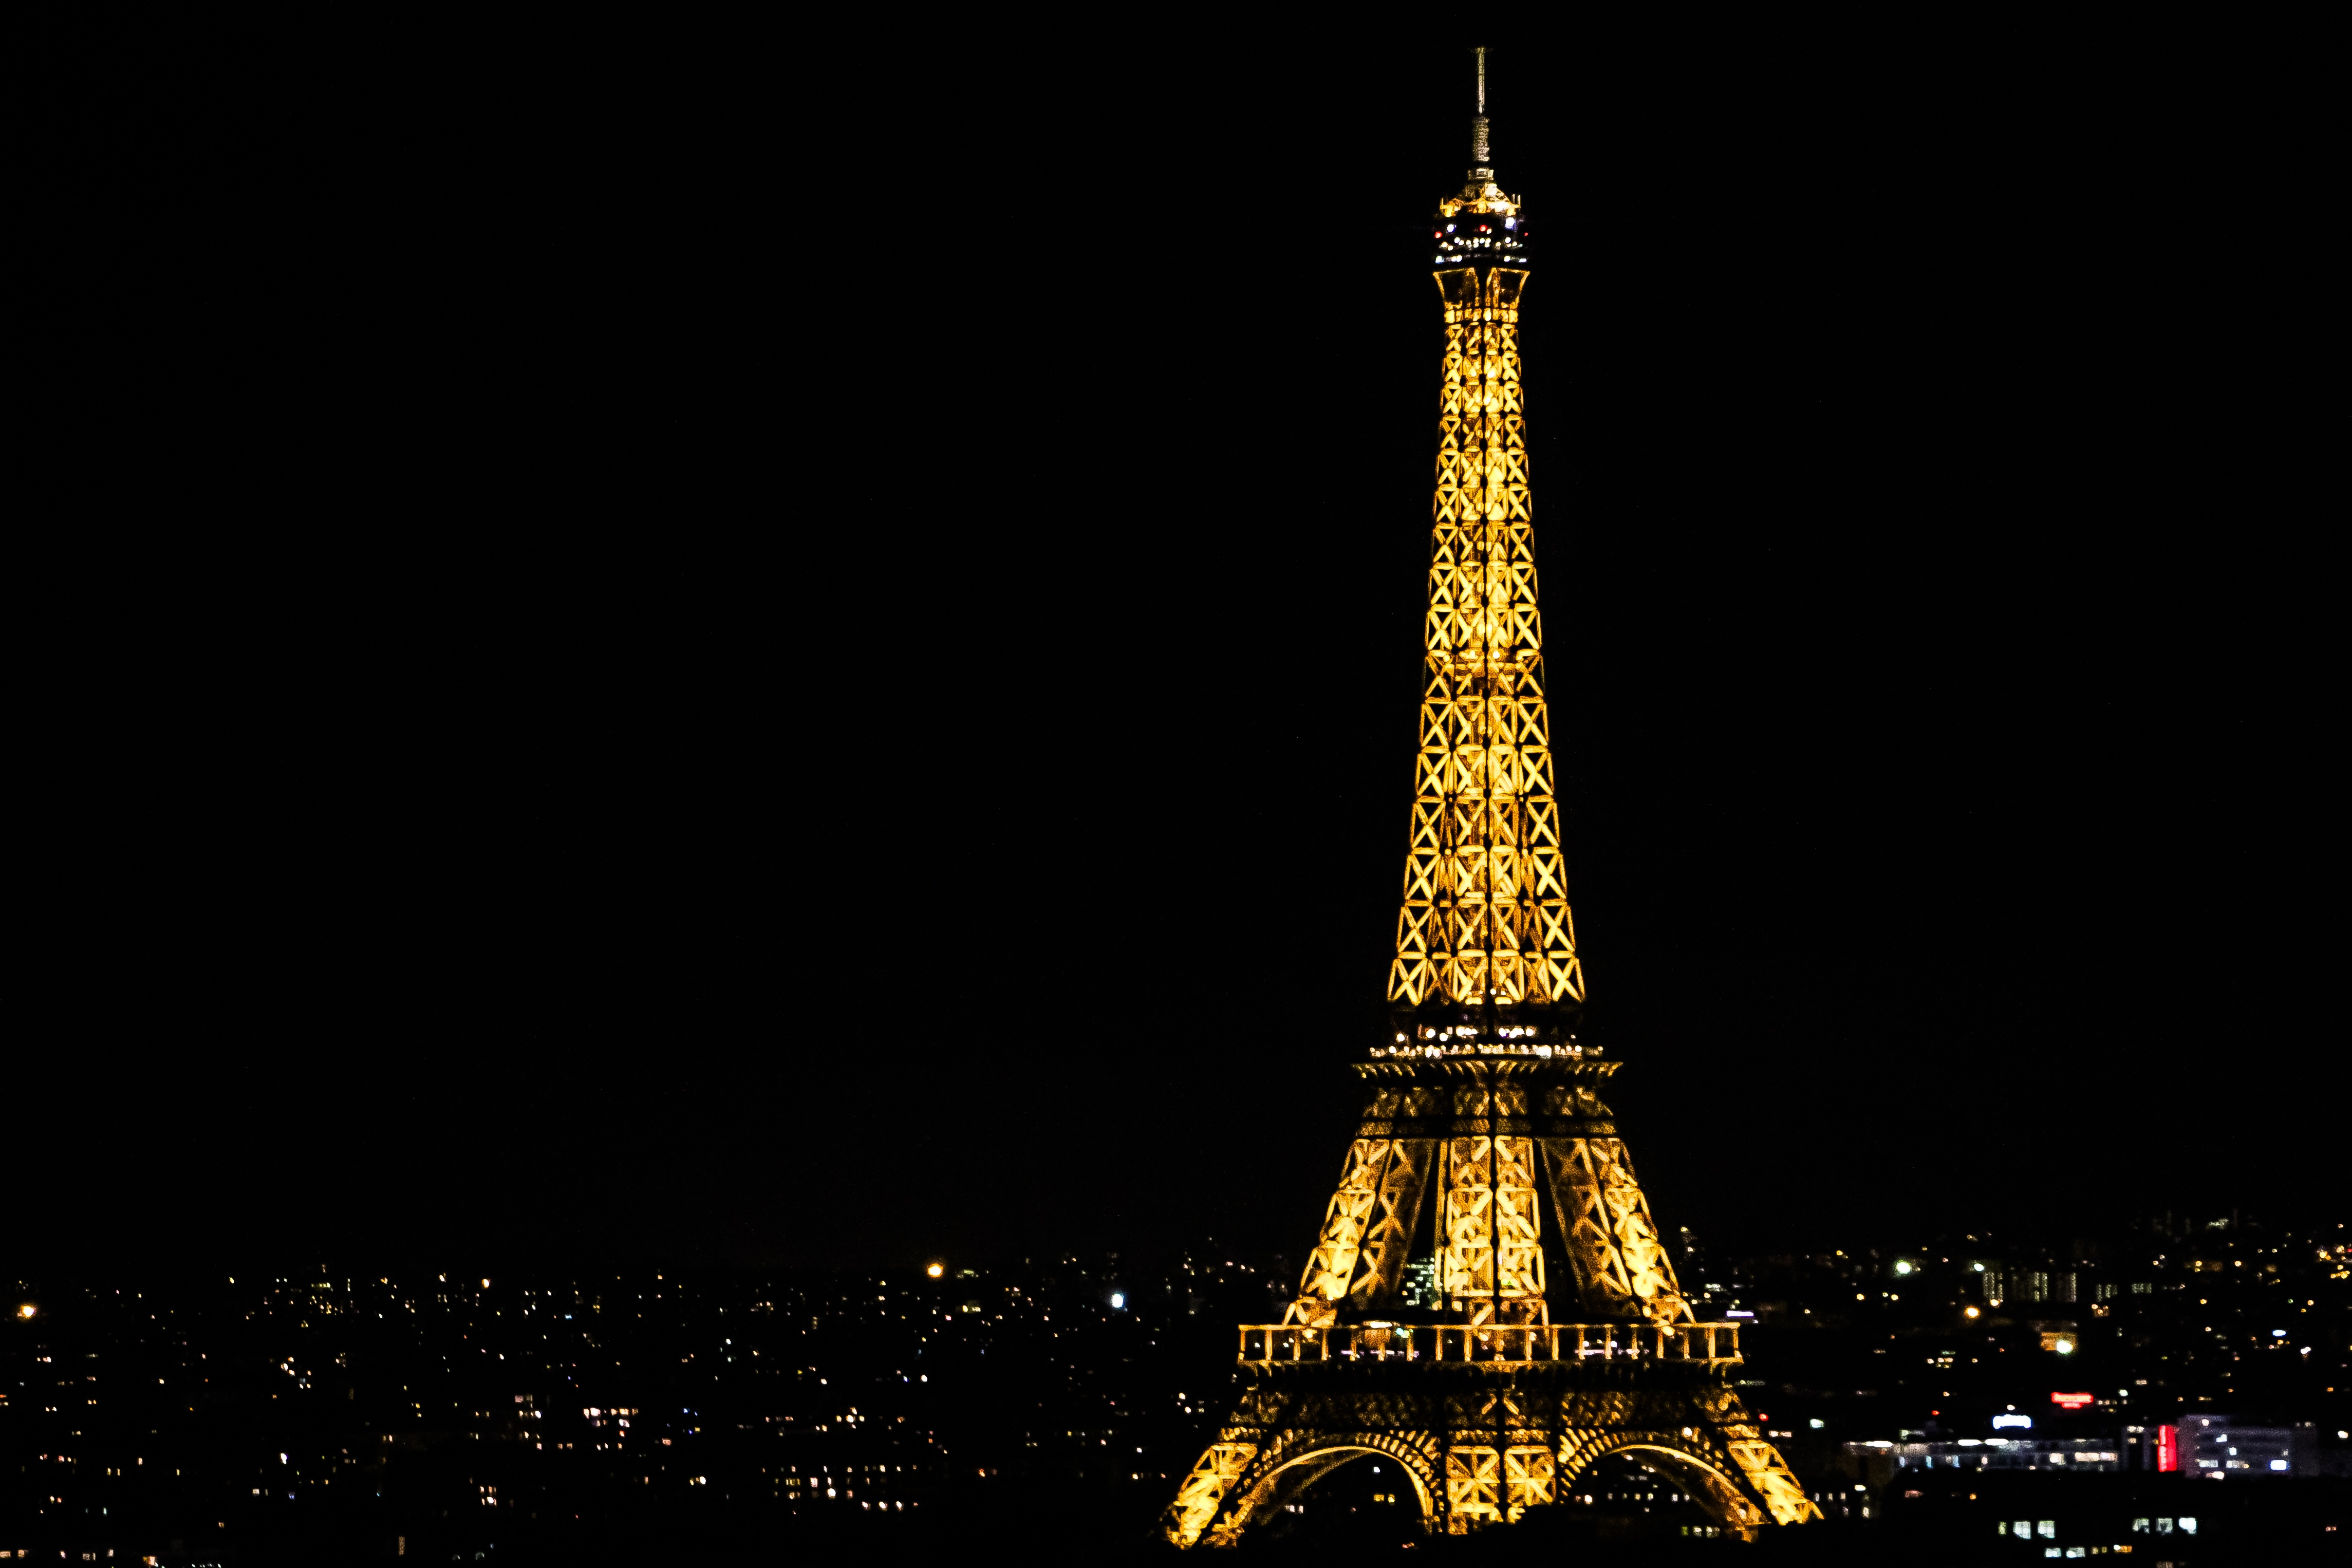 Eiffel Tower At Night In France Free Image Download